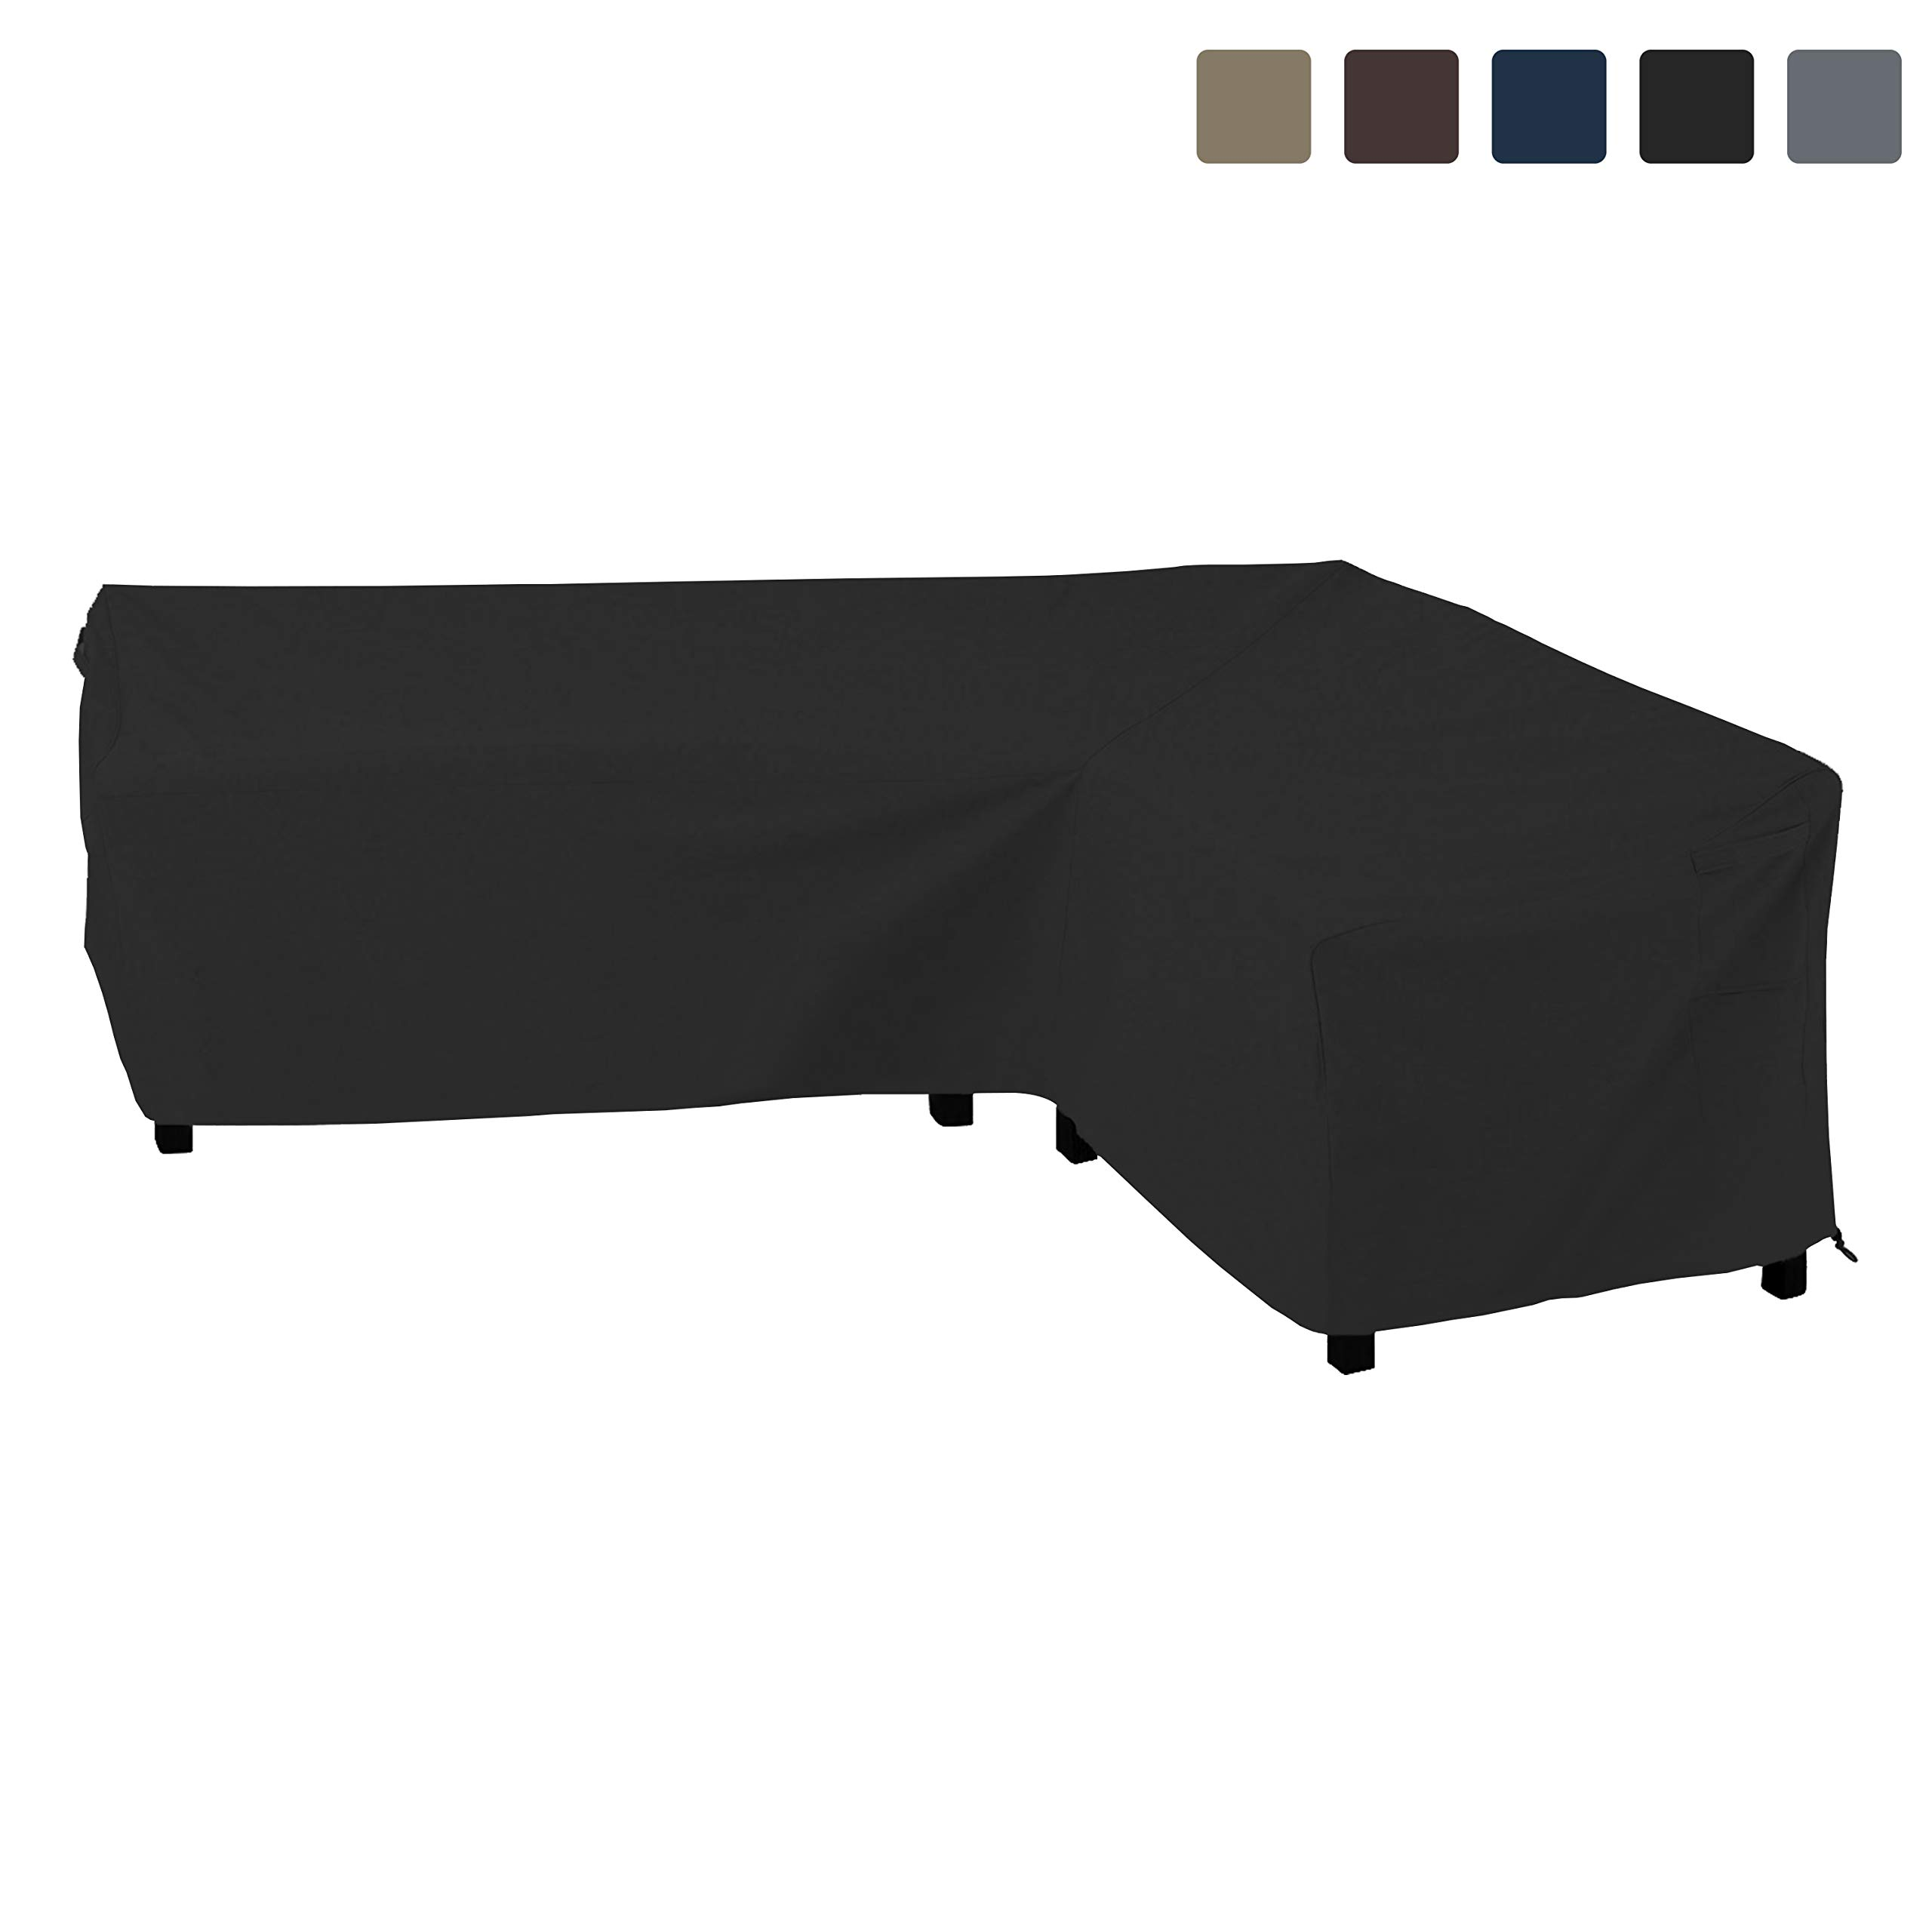 COVERS & ALL Patio Sectional Sofa Cover 12 Oz Waterproof - 100% UV & Weather Resistant PVC Coated 90'' x 120'' x 33''D x 35'' H - L Shape Sofa Cover for Indoor/Outdoor (Right Facing Sofa, Black)